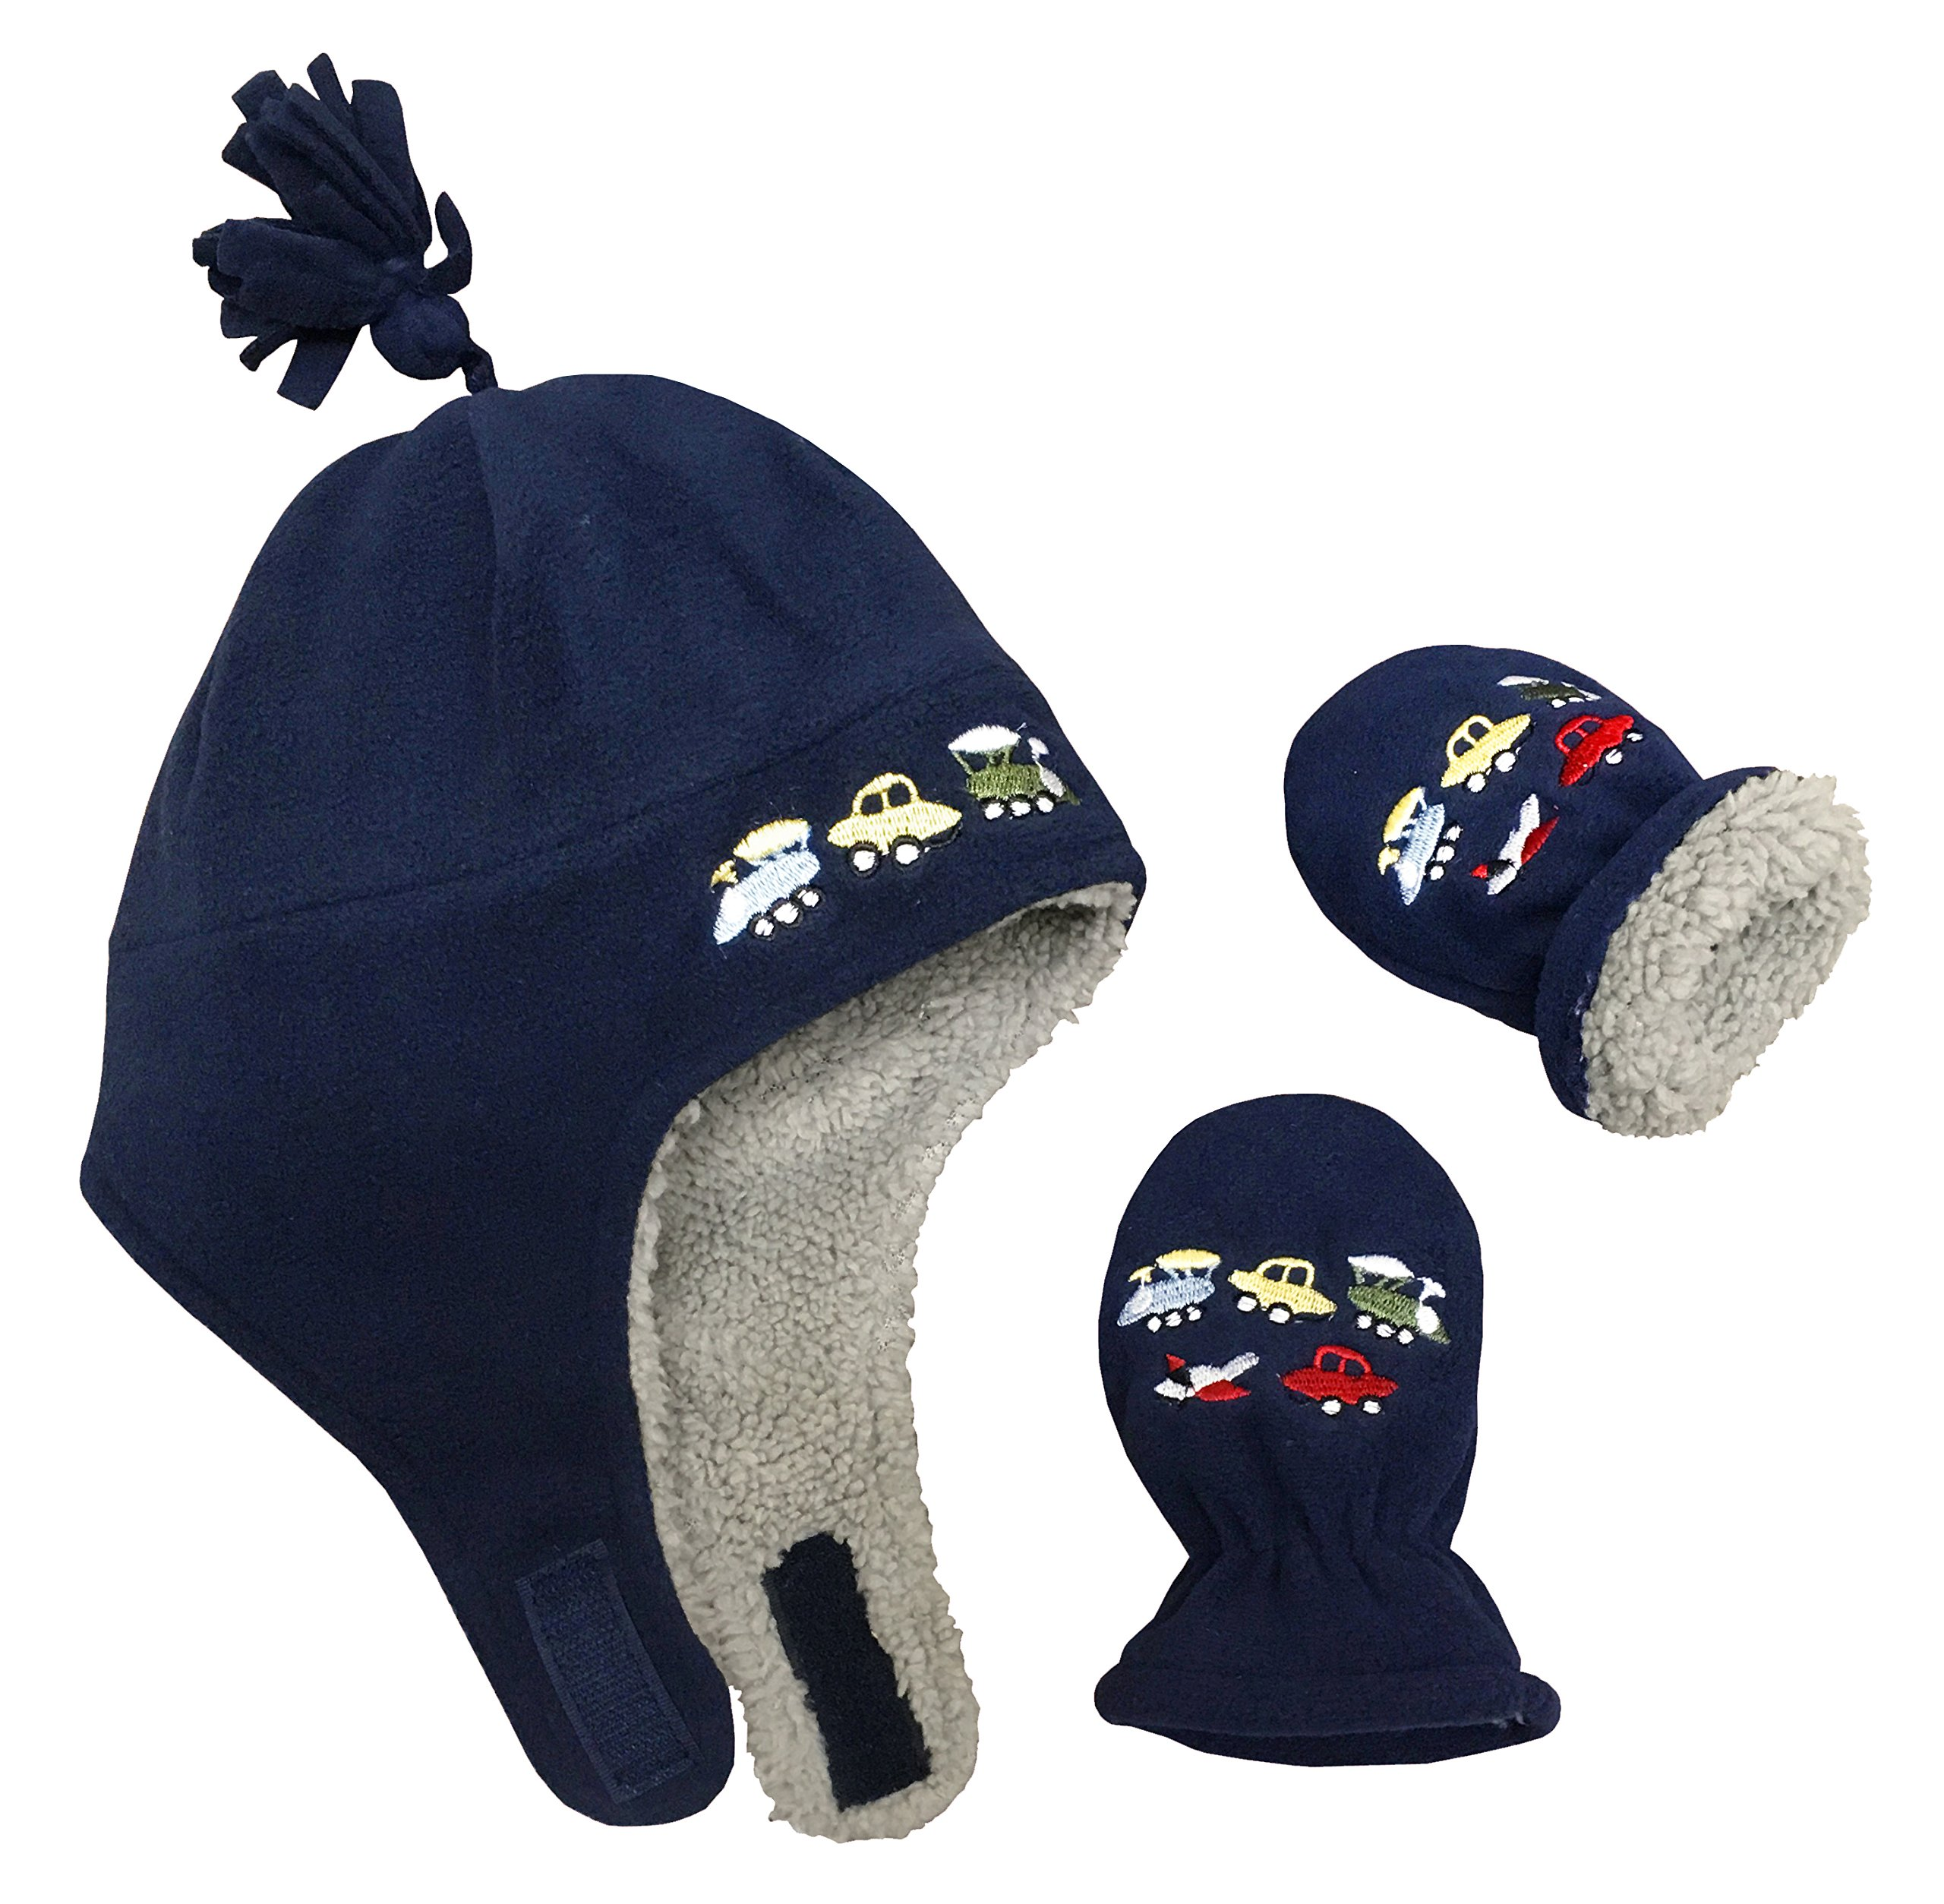 7a0b5e74d23 N Ice Caps Little Boys and Baby Sherpa Lined Fleece Embroidered Hat Mitten  Set